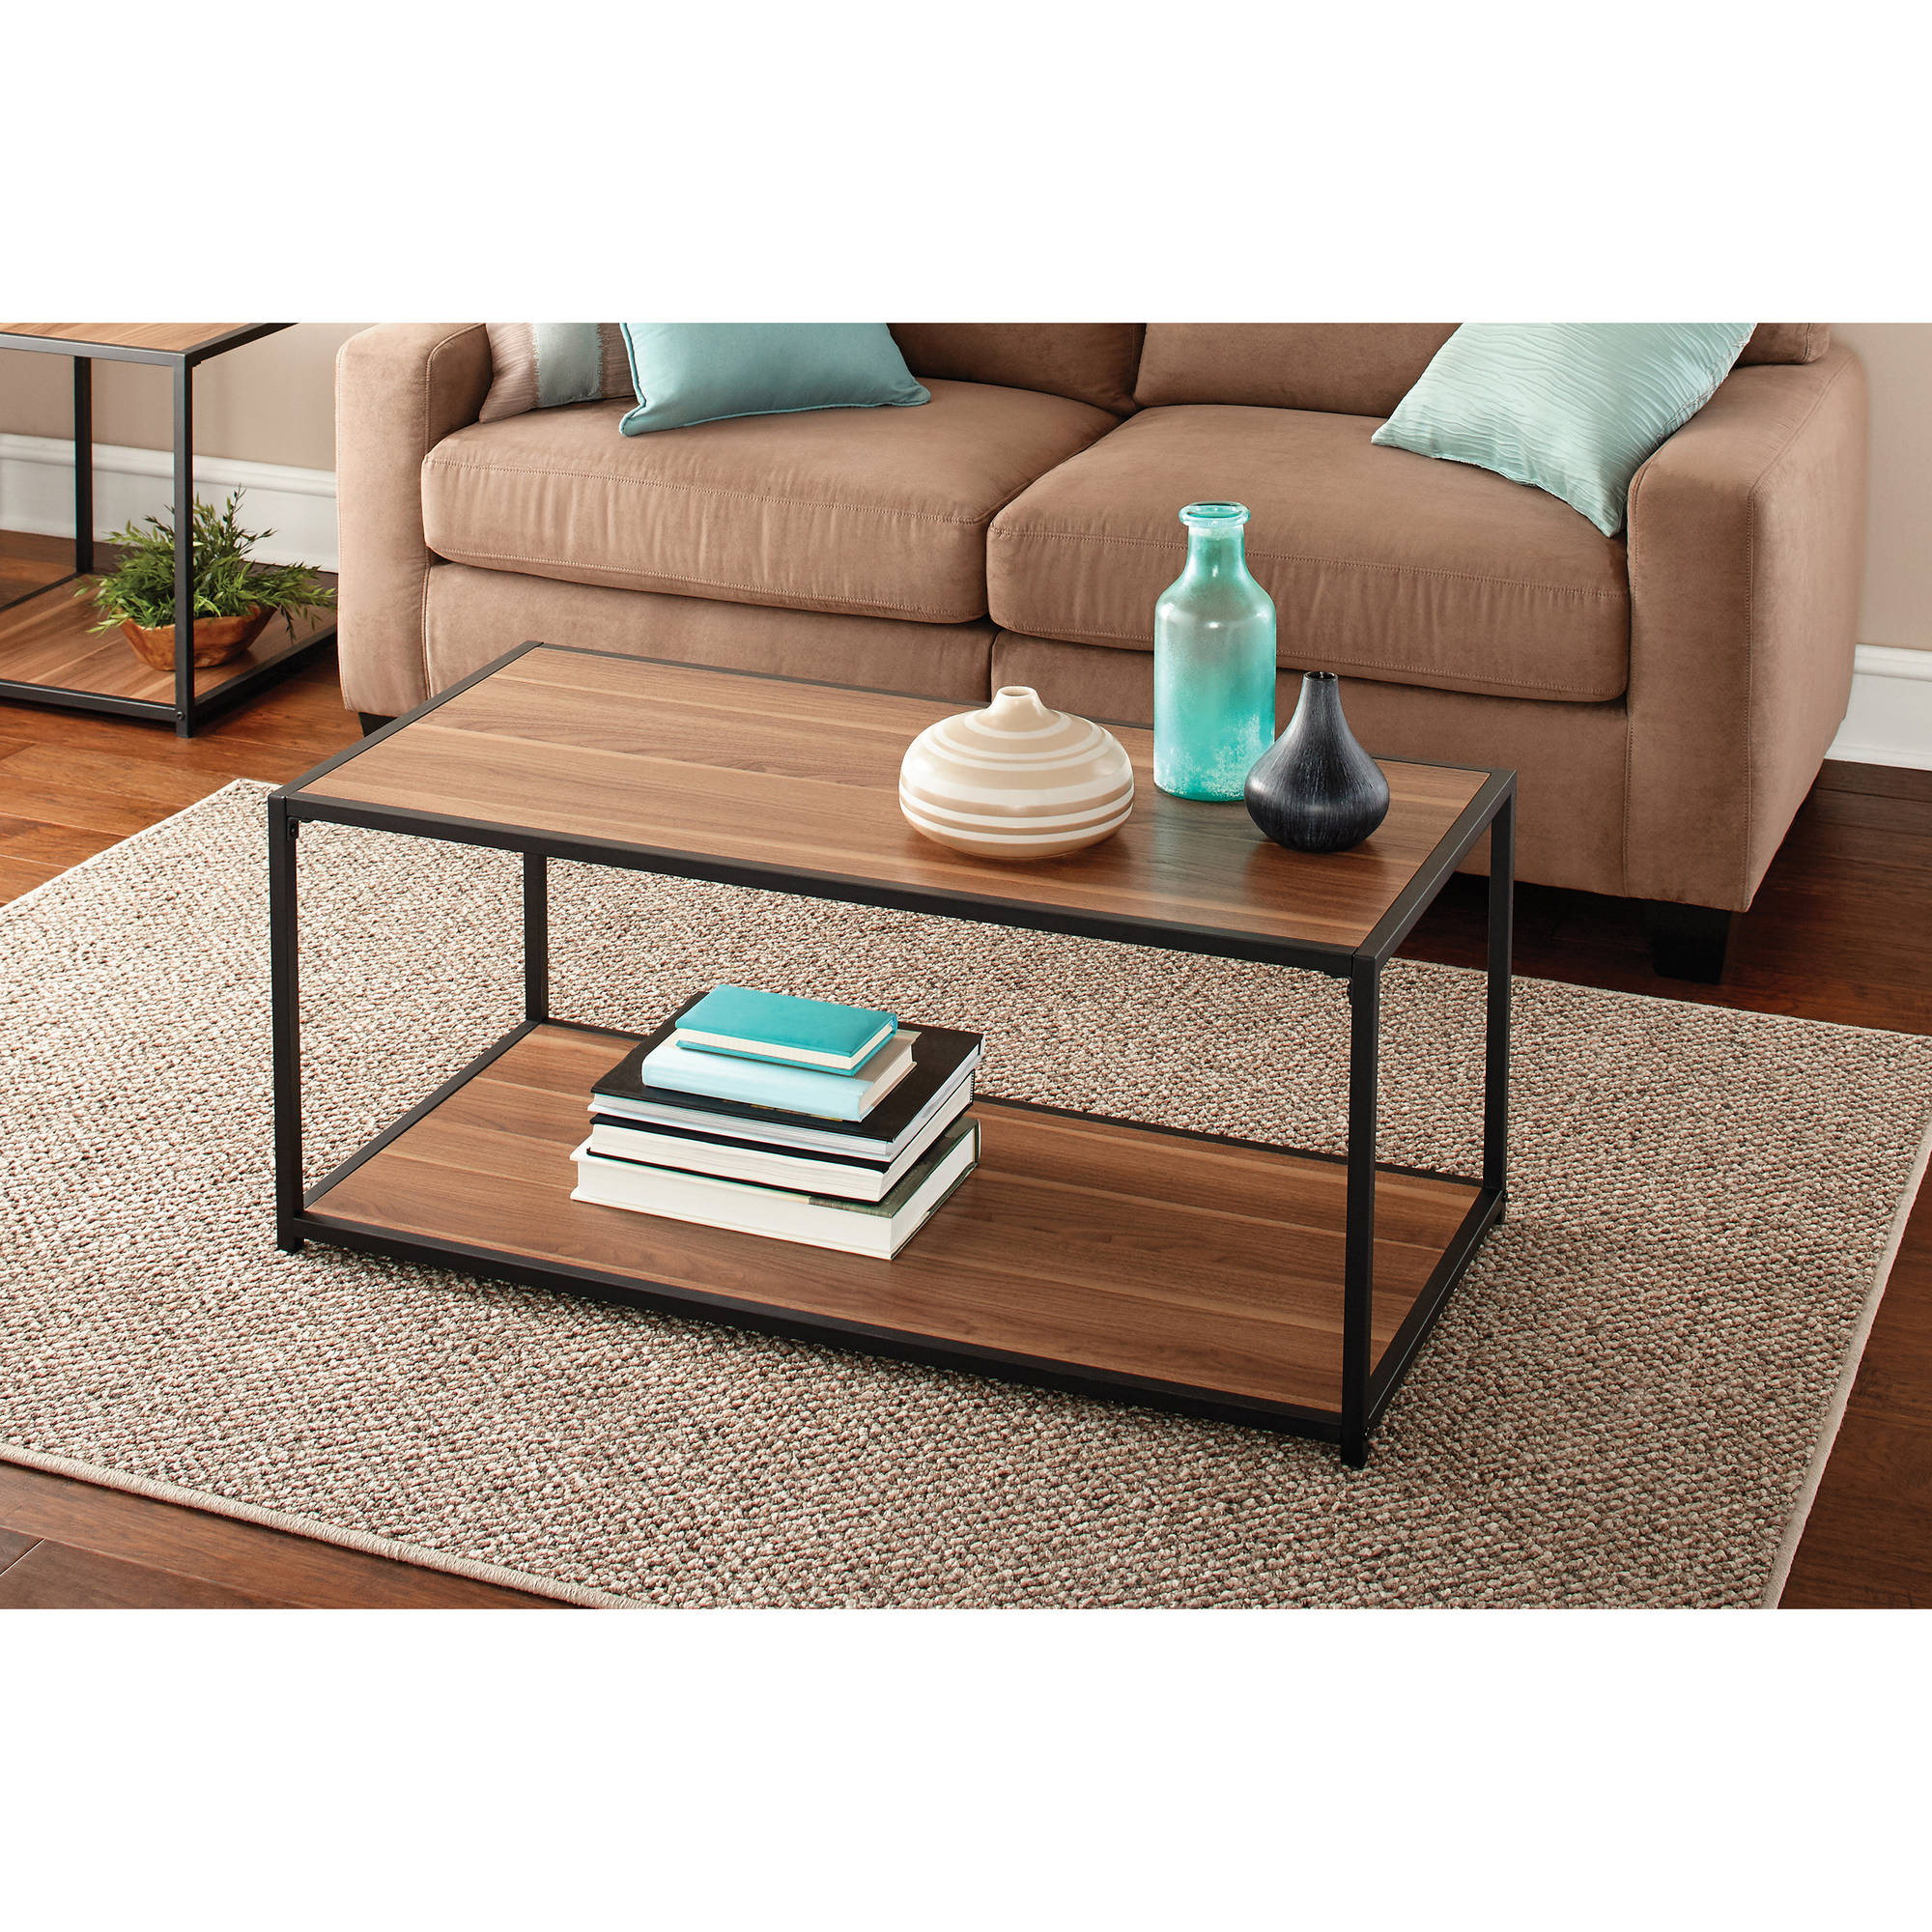 Mainstays Metro Coffee Table Multiple Finishes Walmart within 10 Smart Concepts of How to Craft Living Room Set For Sale Cheap